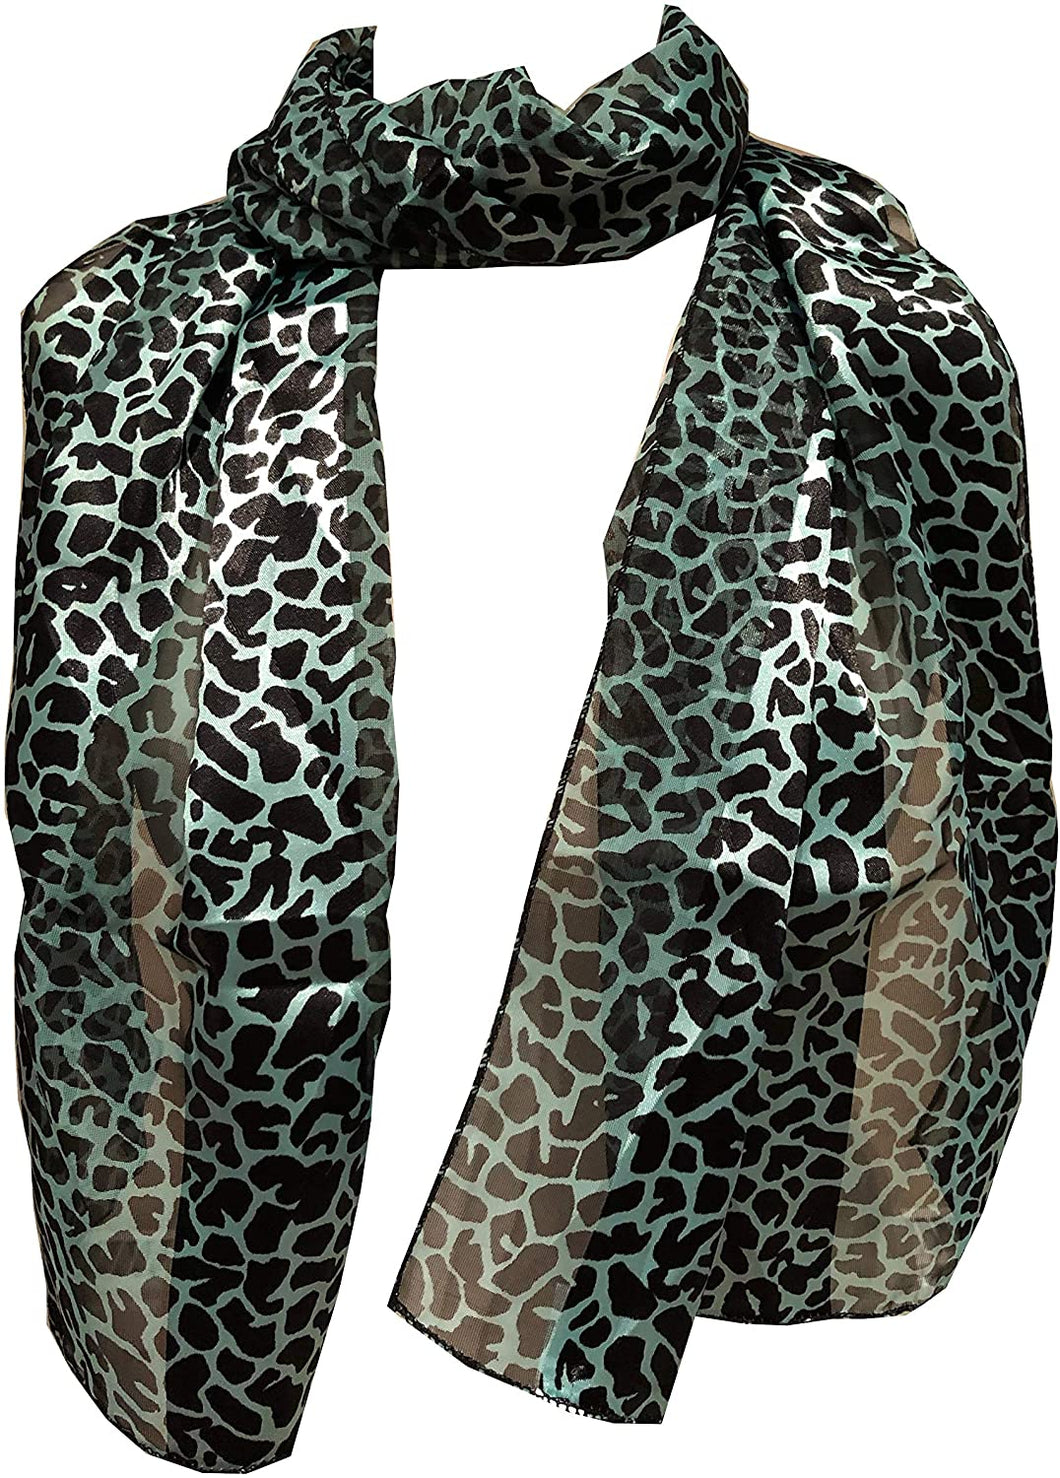 Leopard print long thin chiffon scarf, lovely thin neck scarves, great present.